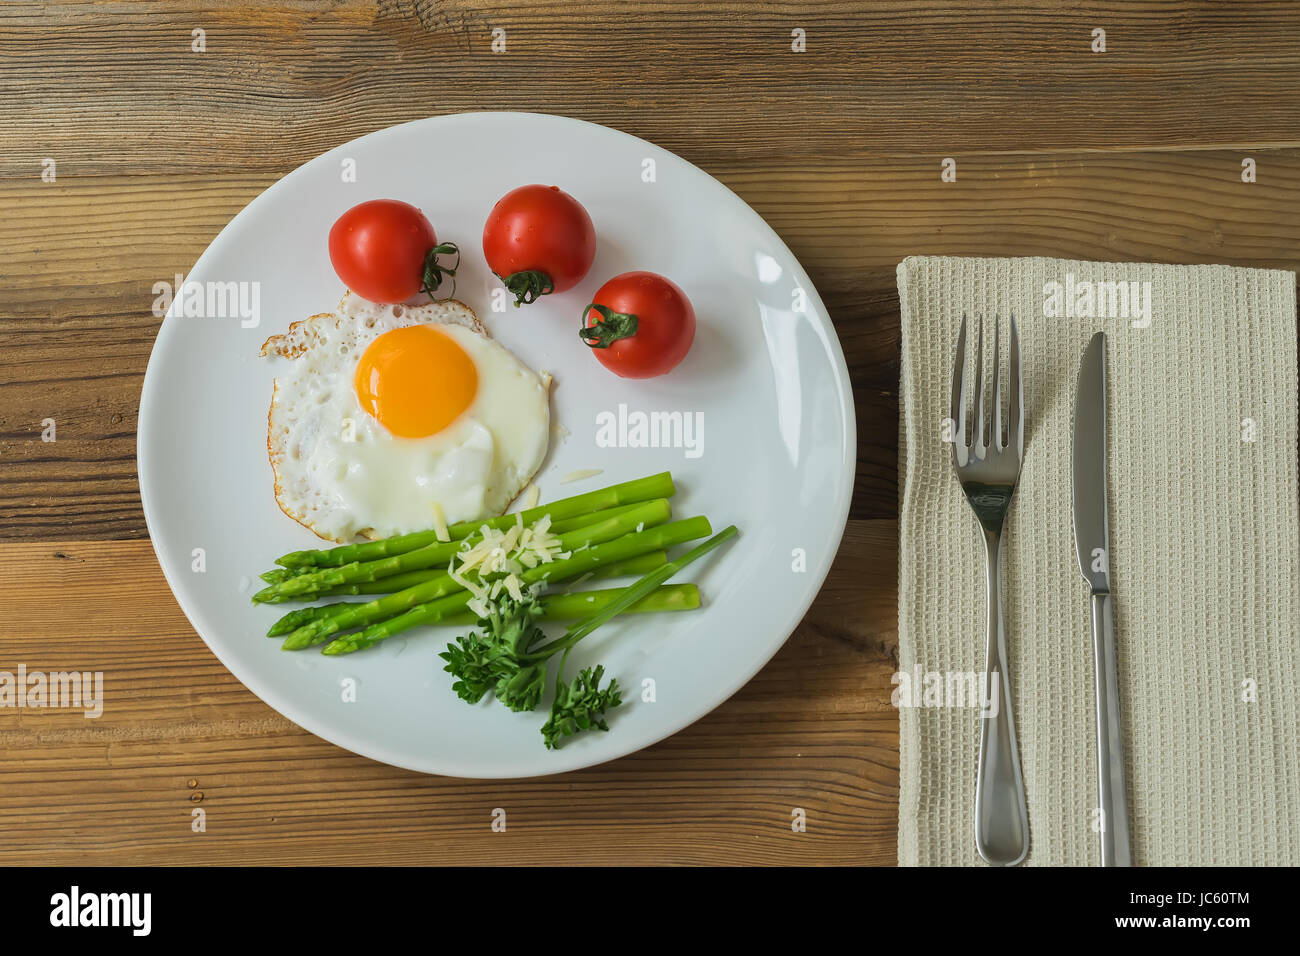 Green asparagus with fried egg, cherry tomatoes for healthy breakfast. - Stock Image